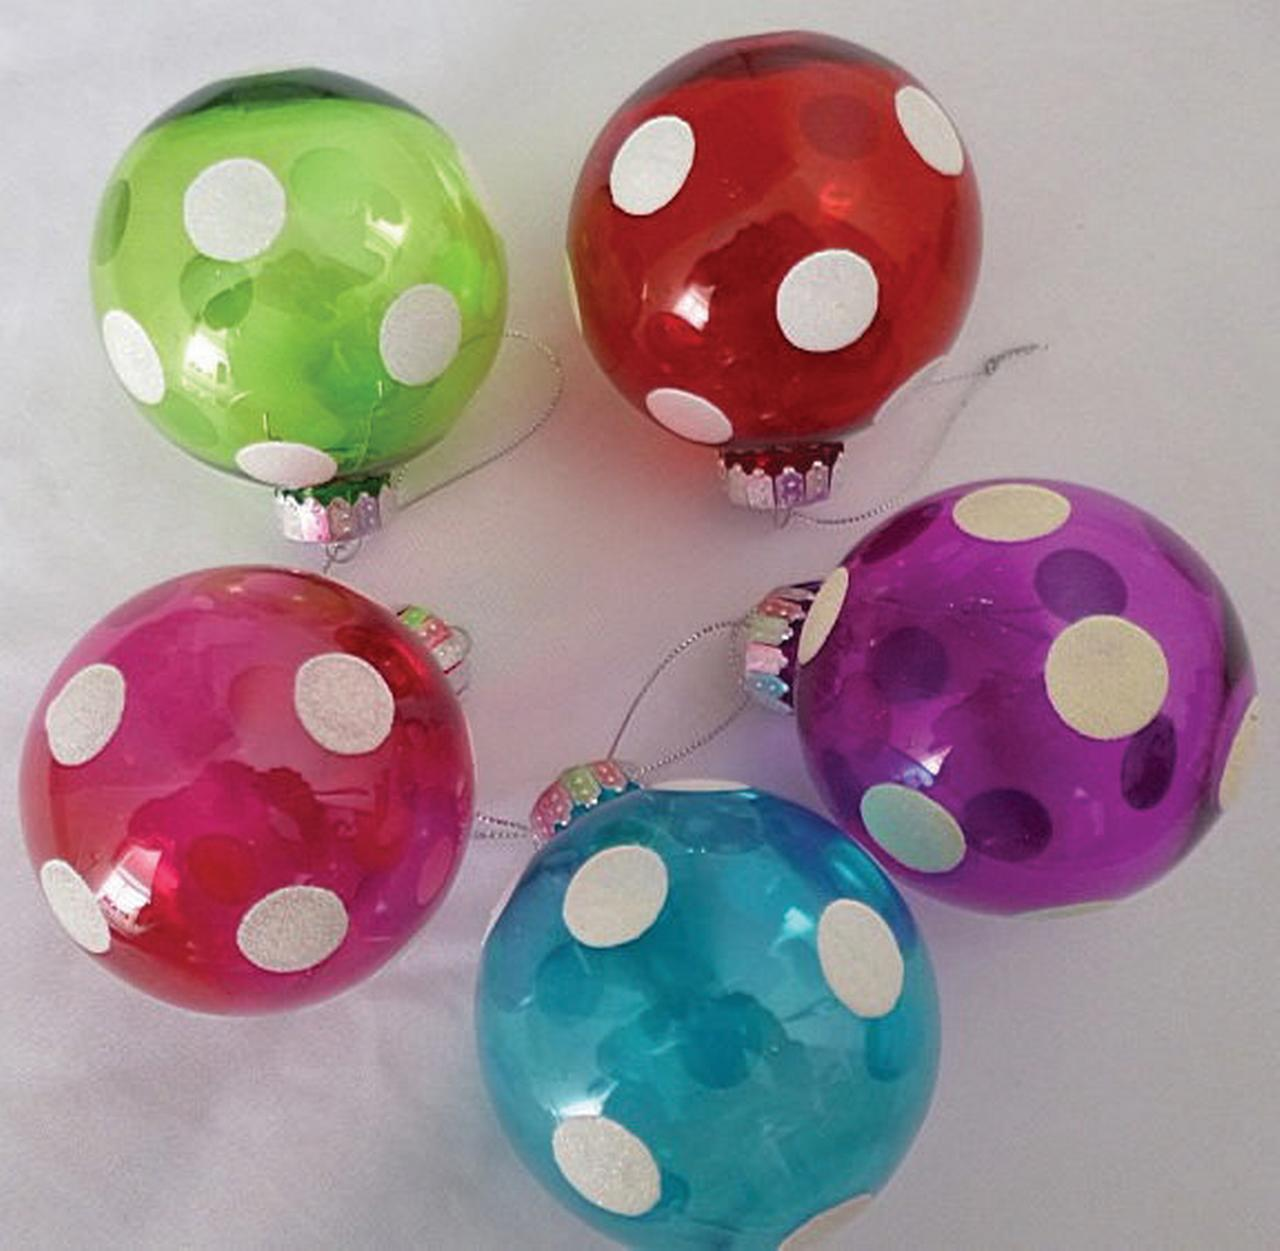 Holiday Basix C-J14031 Painted Ball, 83 mm H